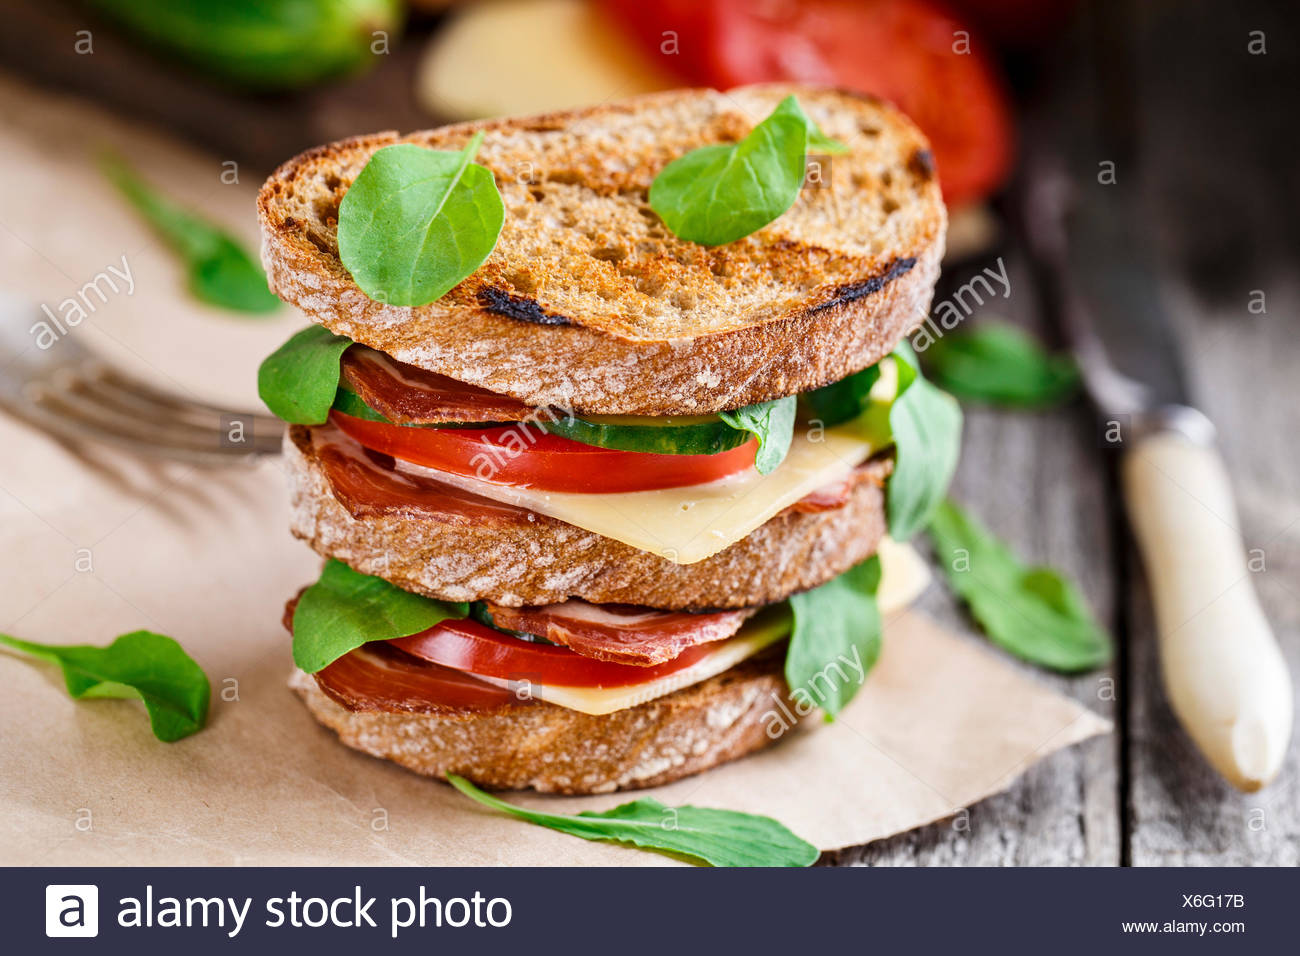 Big sandwich with ham, cheese and vegetables - Stock Image